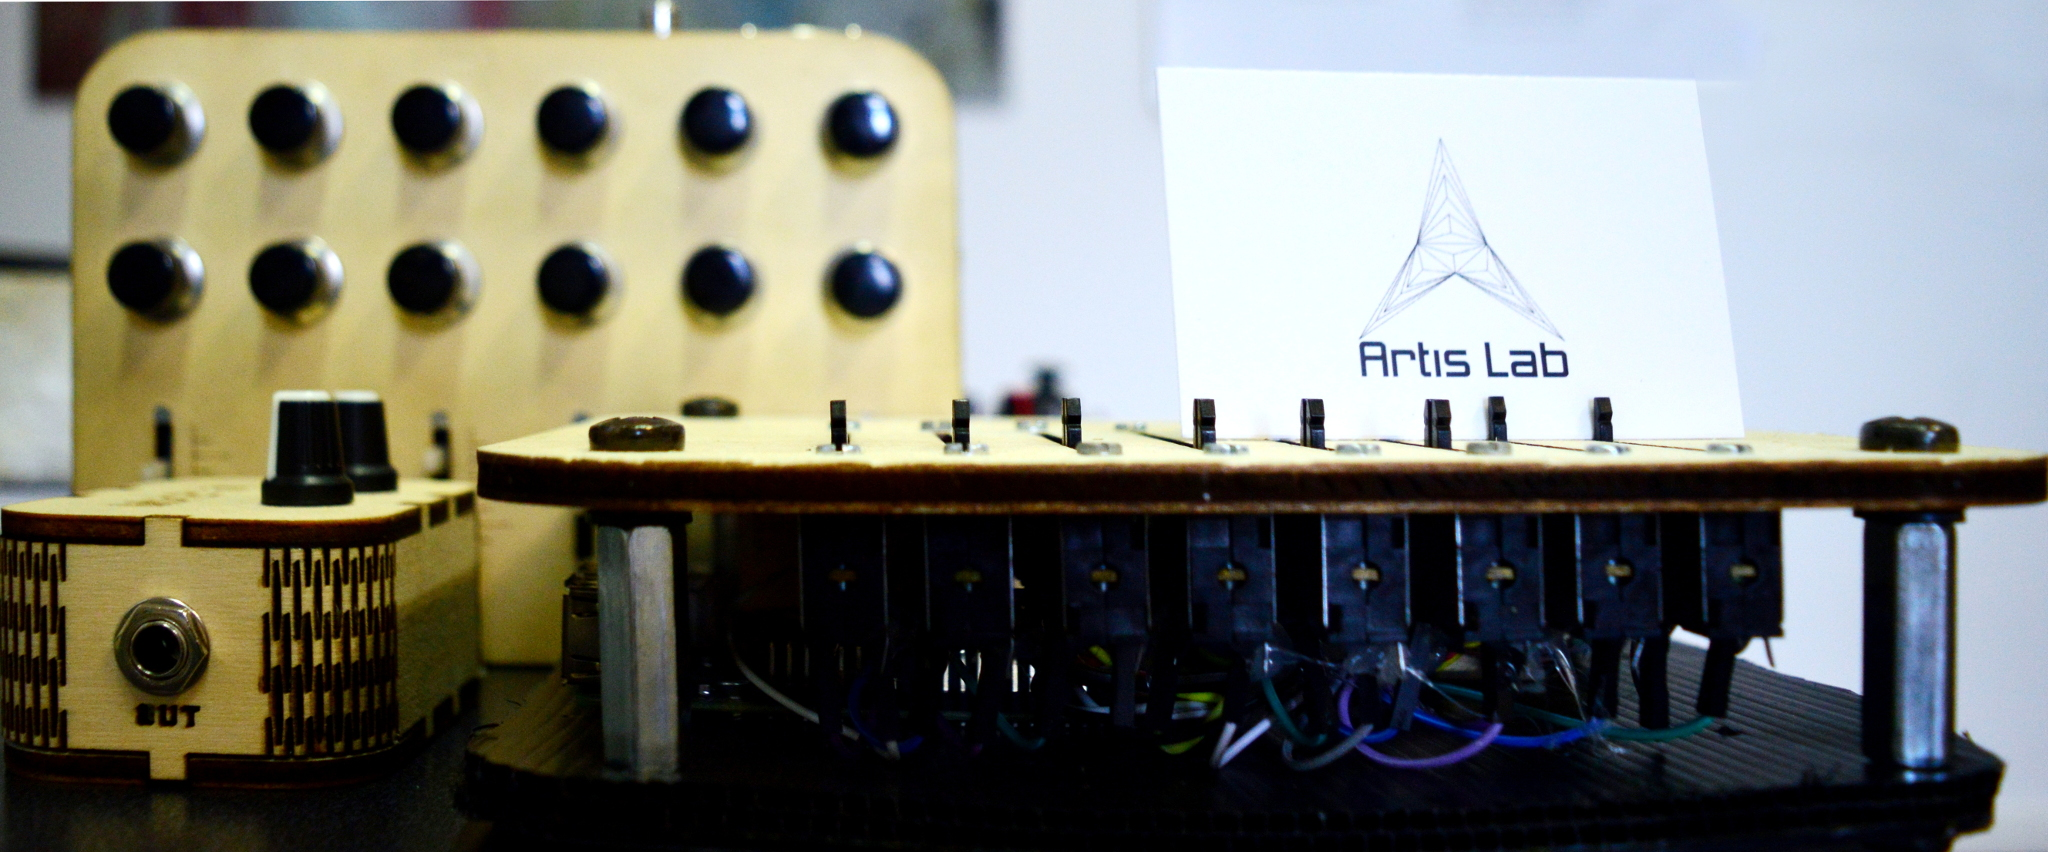 Pure Data Raspberry Pi: Synthberry Pi - DIY Synth - Artislab it